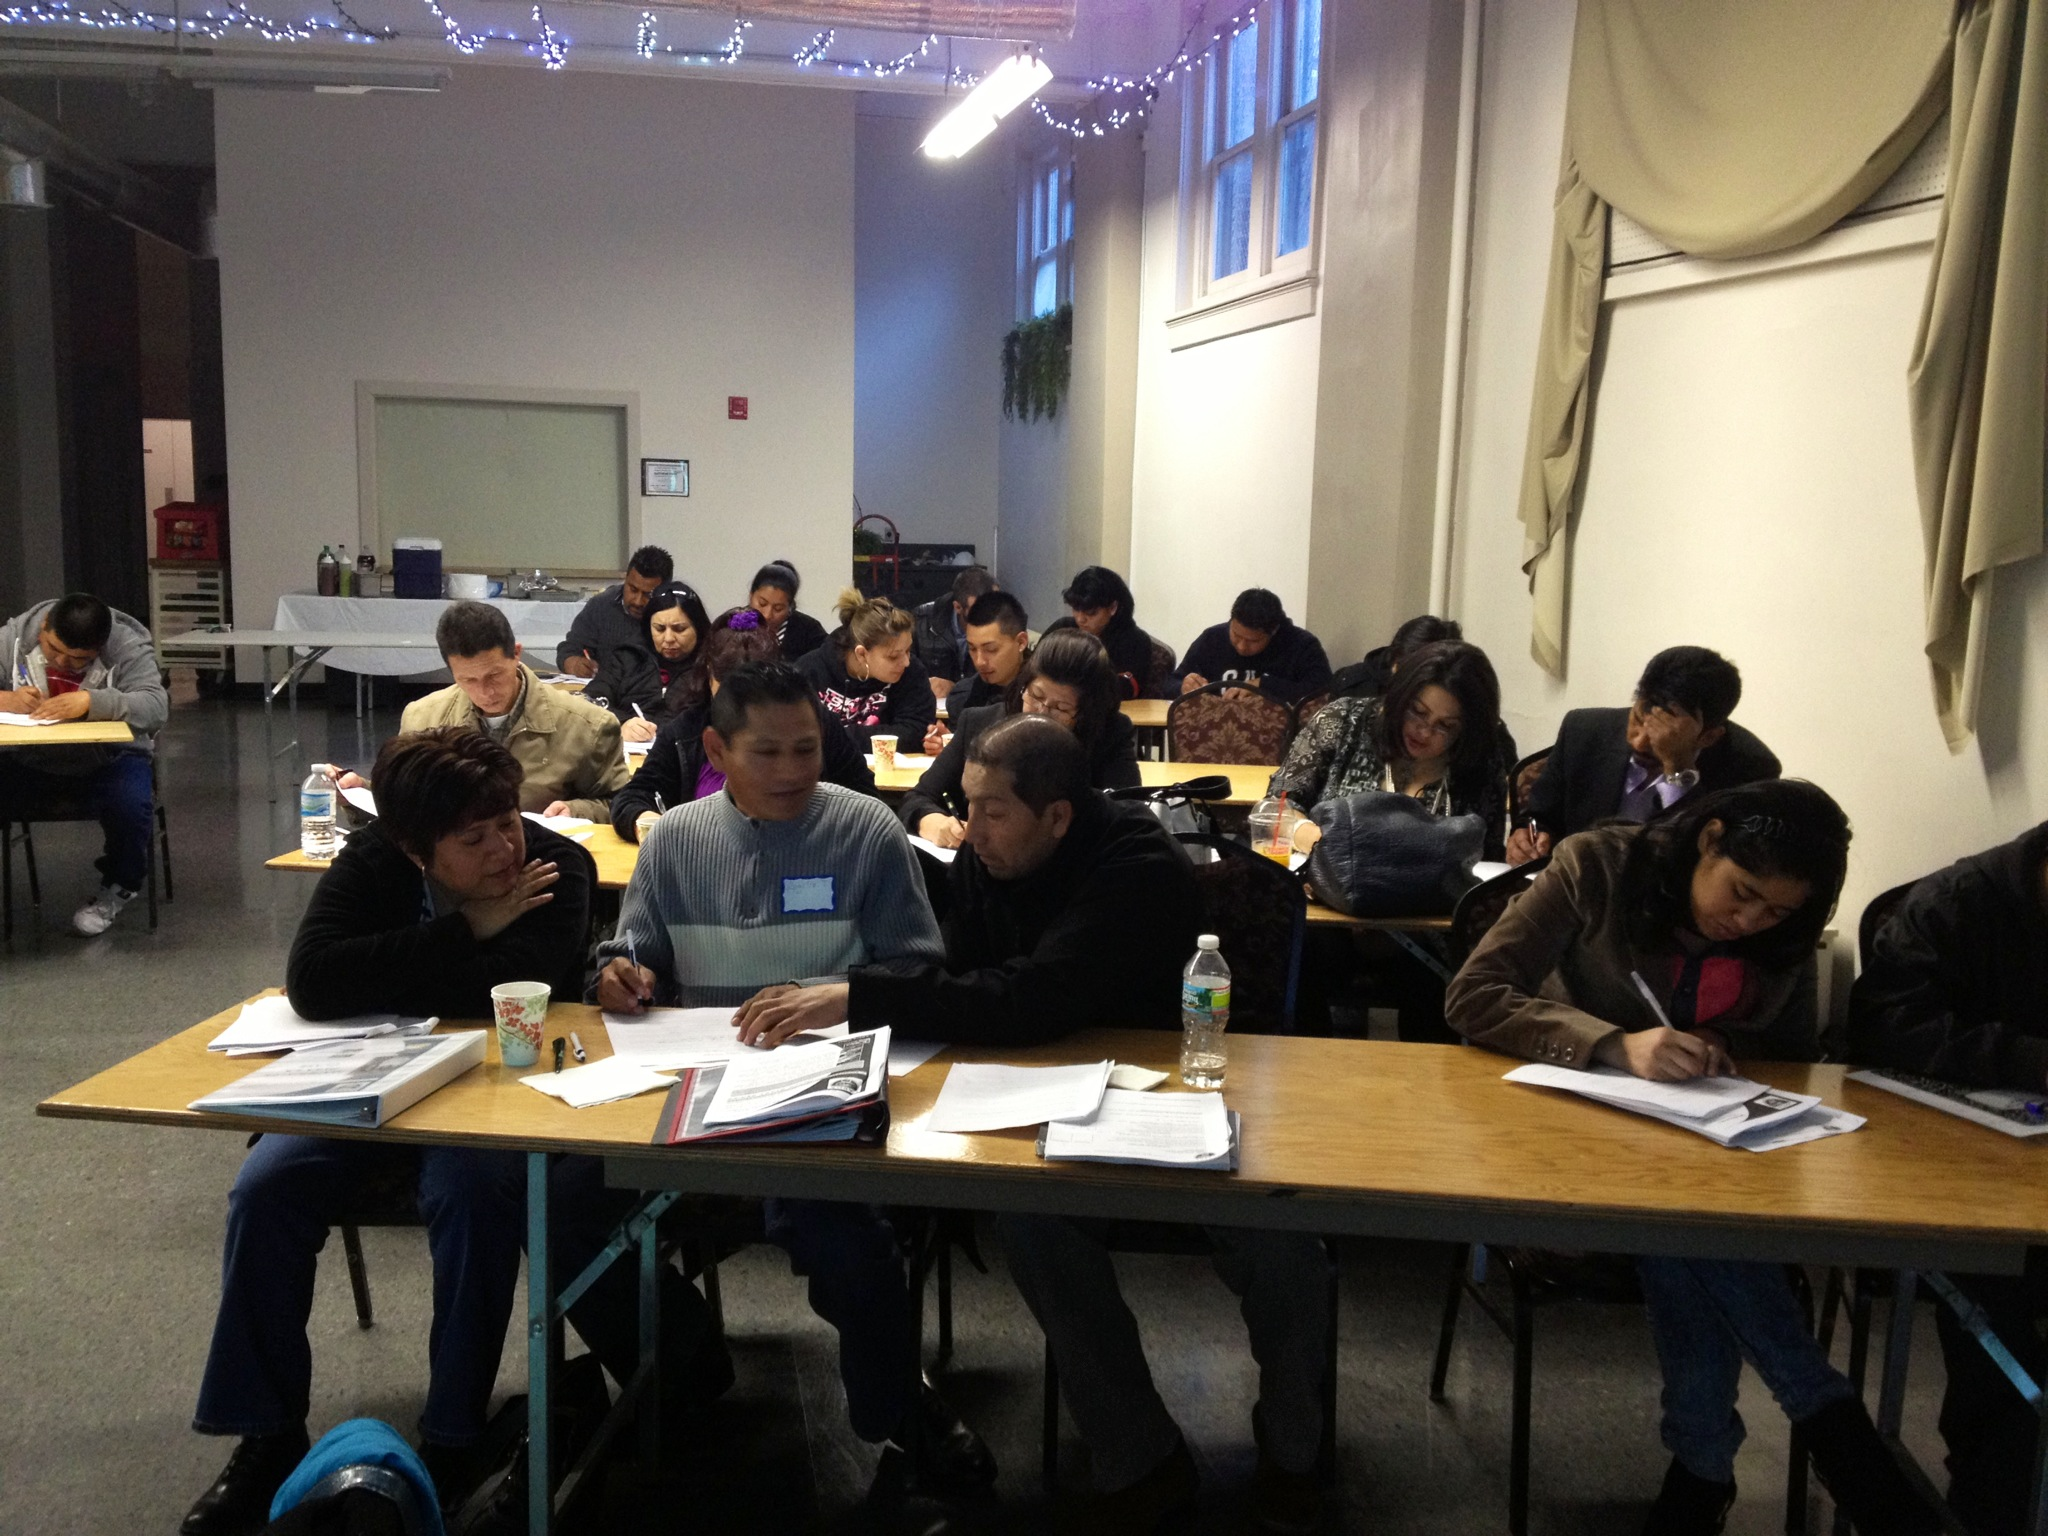 Entrepreneurship is On the Rise in Bridgeton - 34 Attend Spanish Language Business Workshop